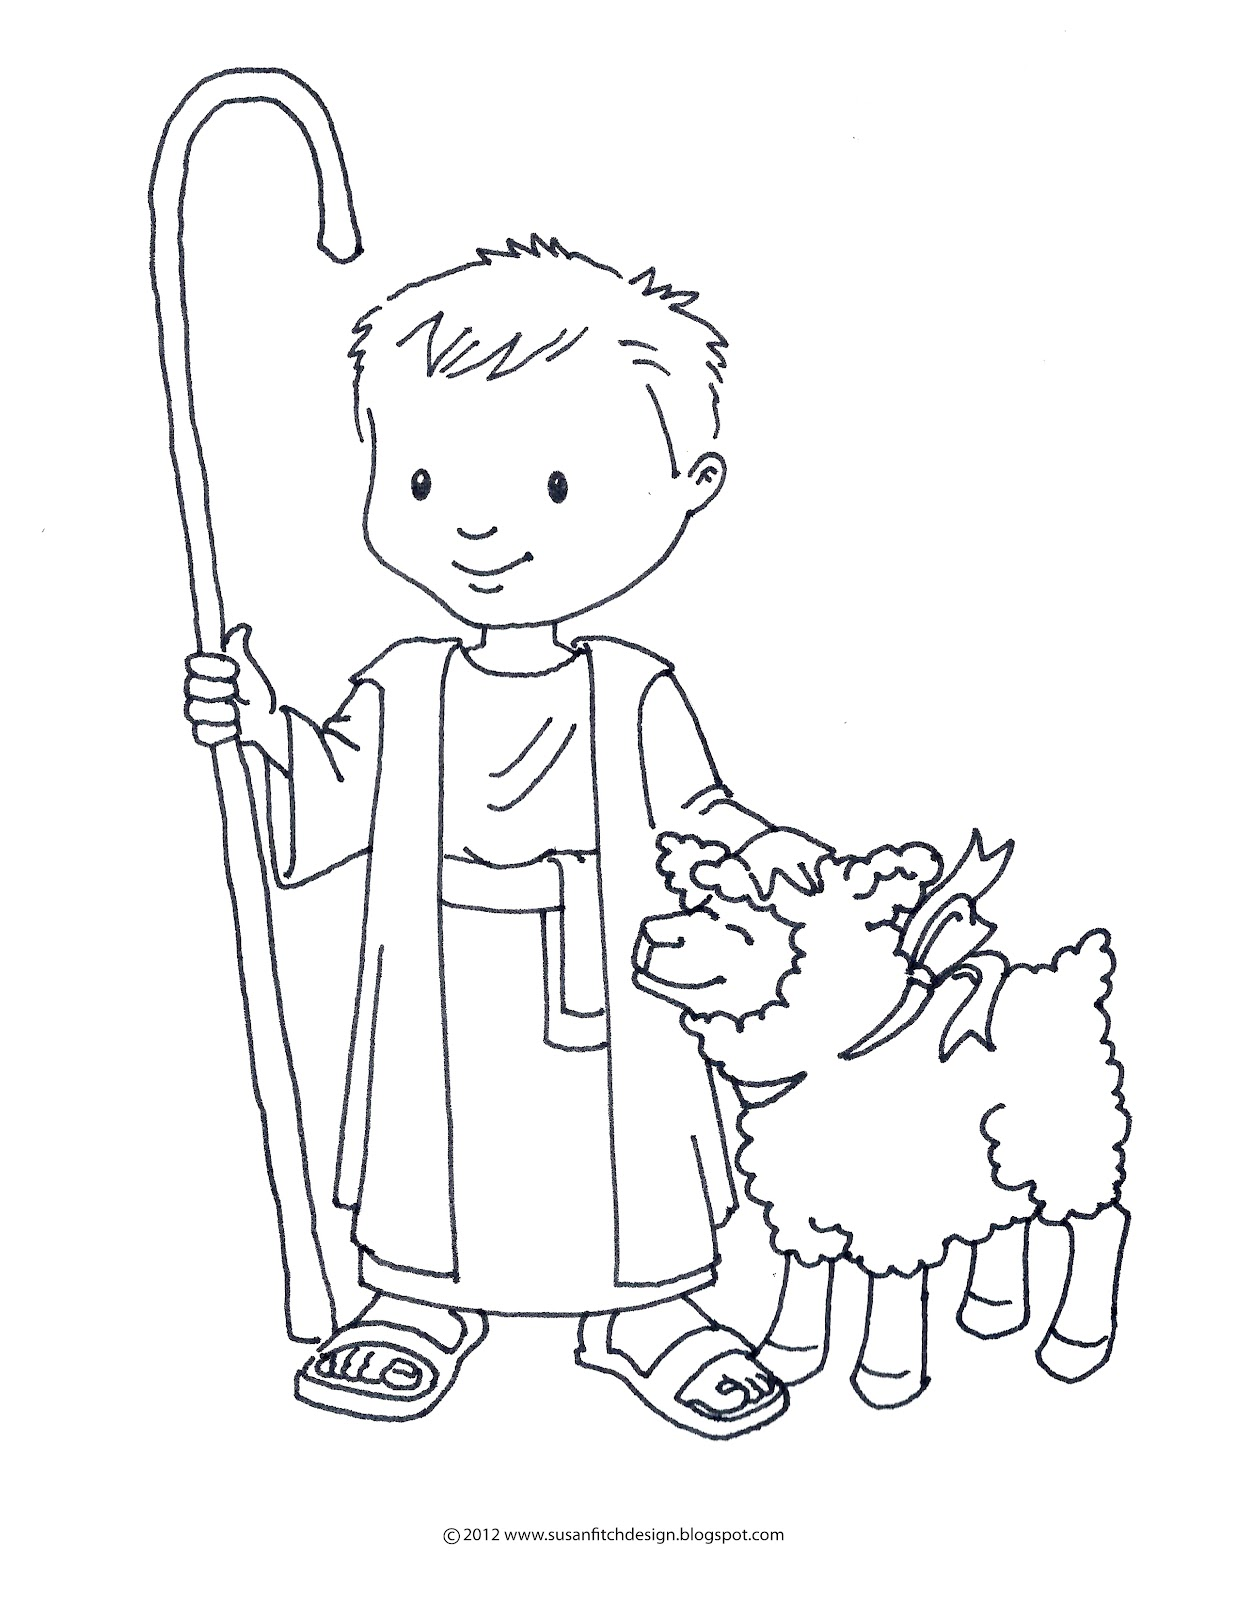 Susan fitch design for Shepherd and sheep coloring page